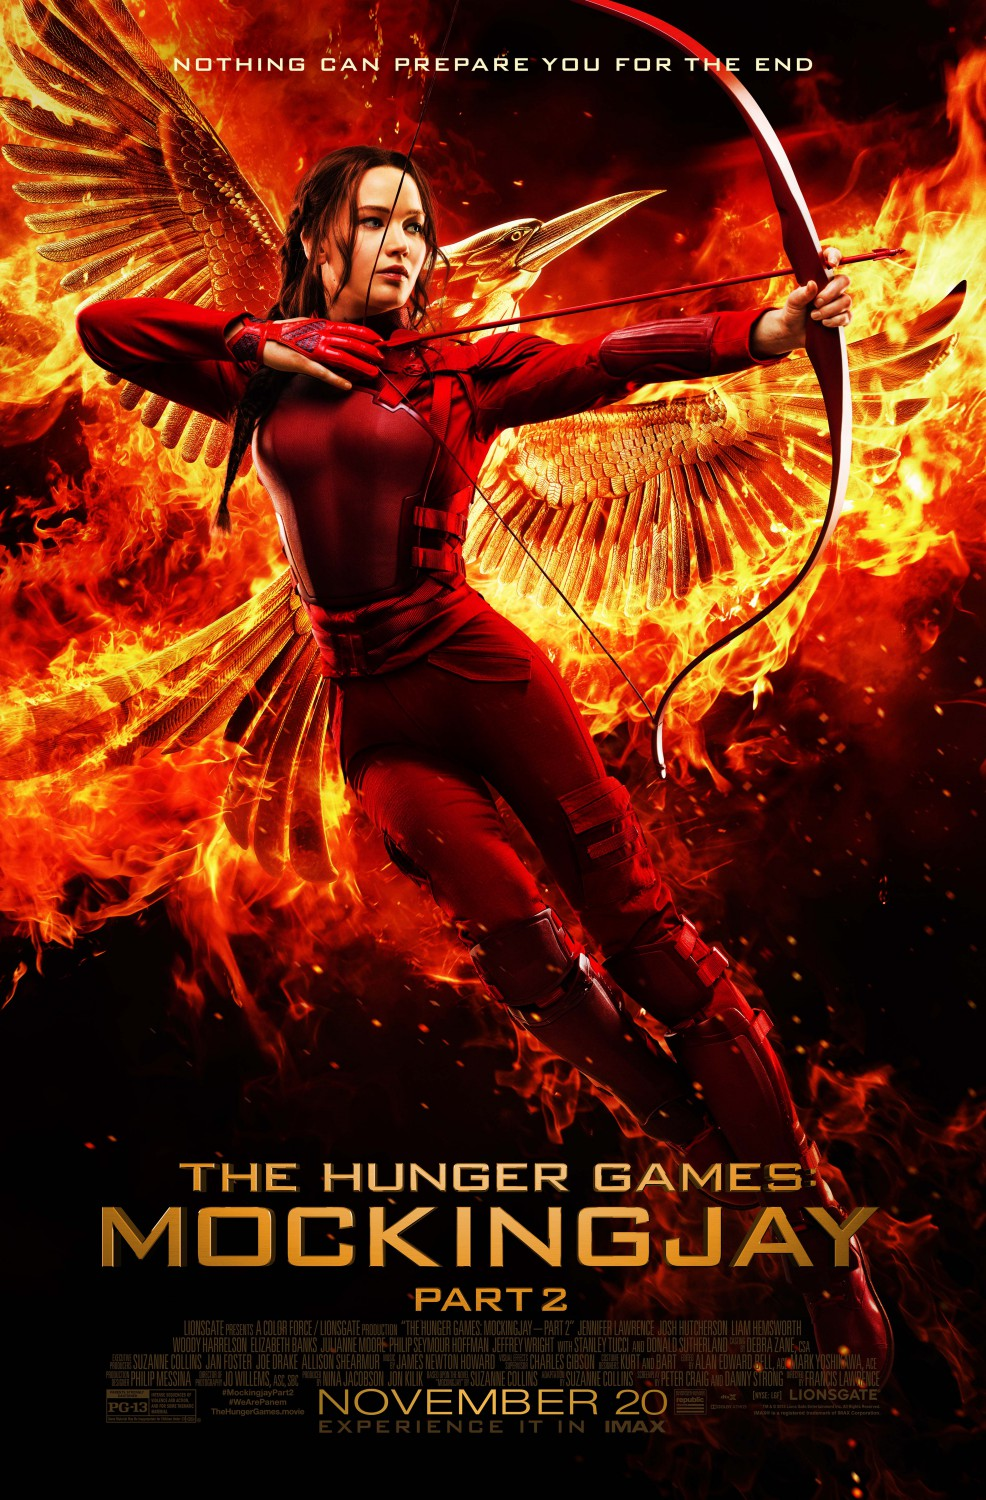 8 - The Hunger Games Mockingjay Part 2